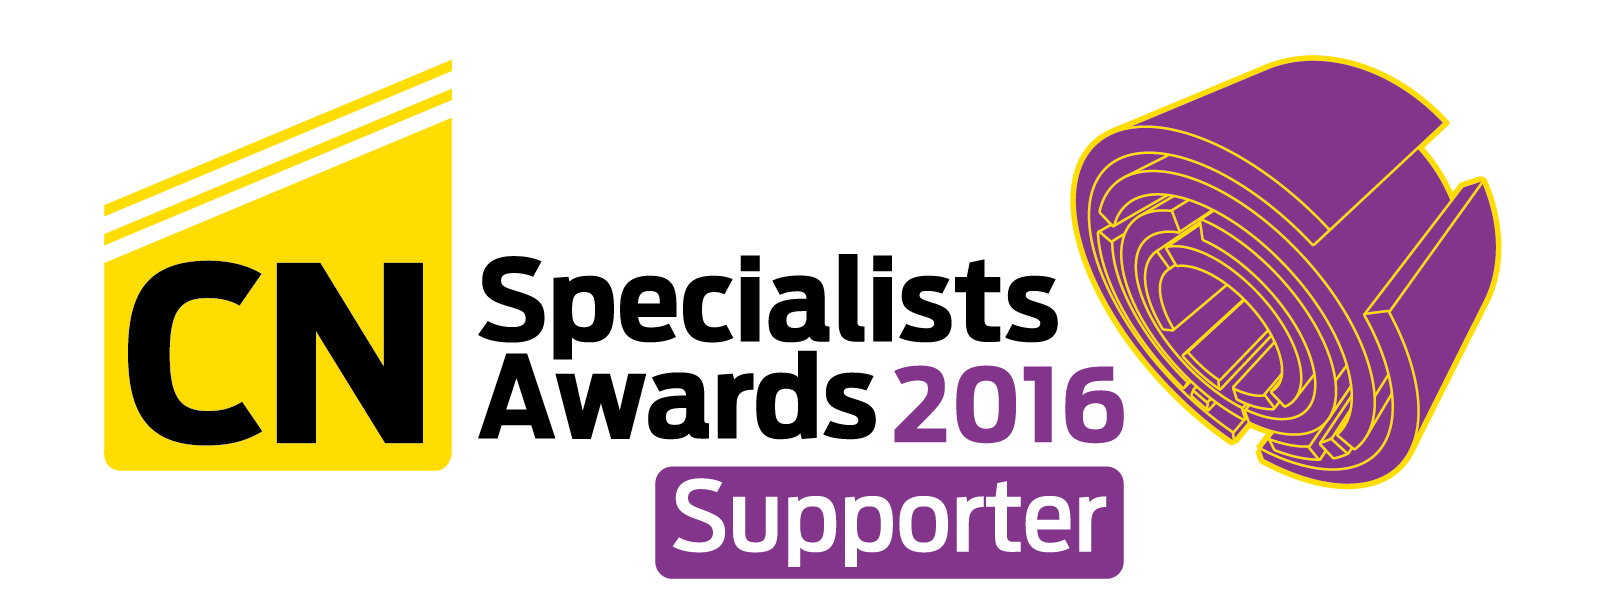 BW54 CN SPECIALIST AWARDS LOGO SUPPORTER